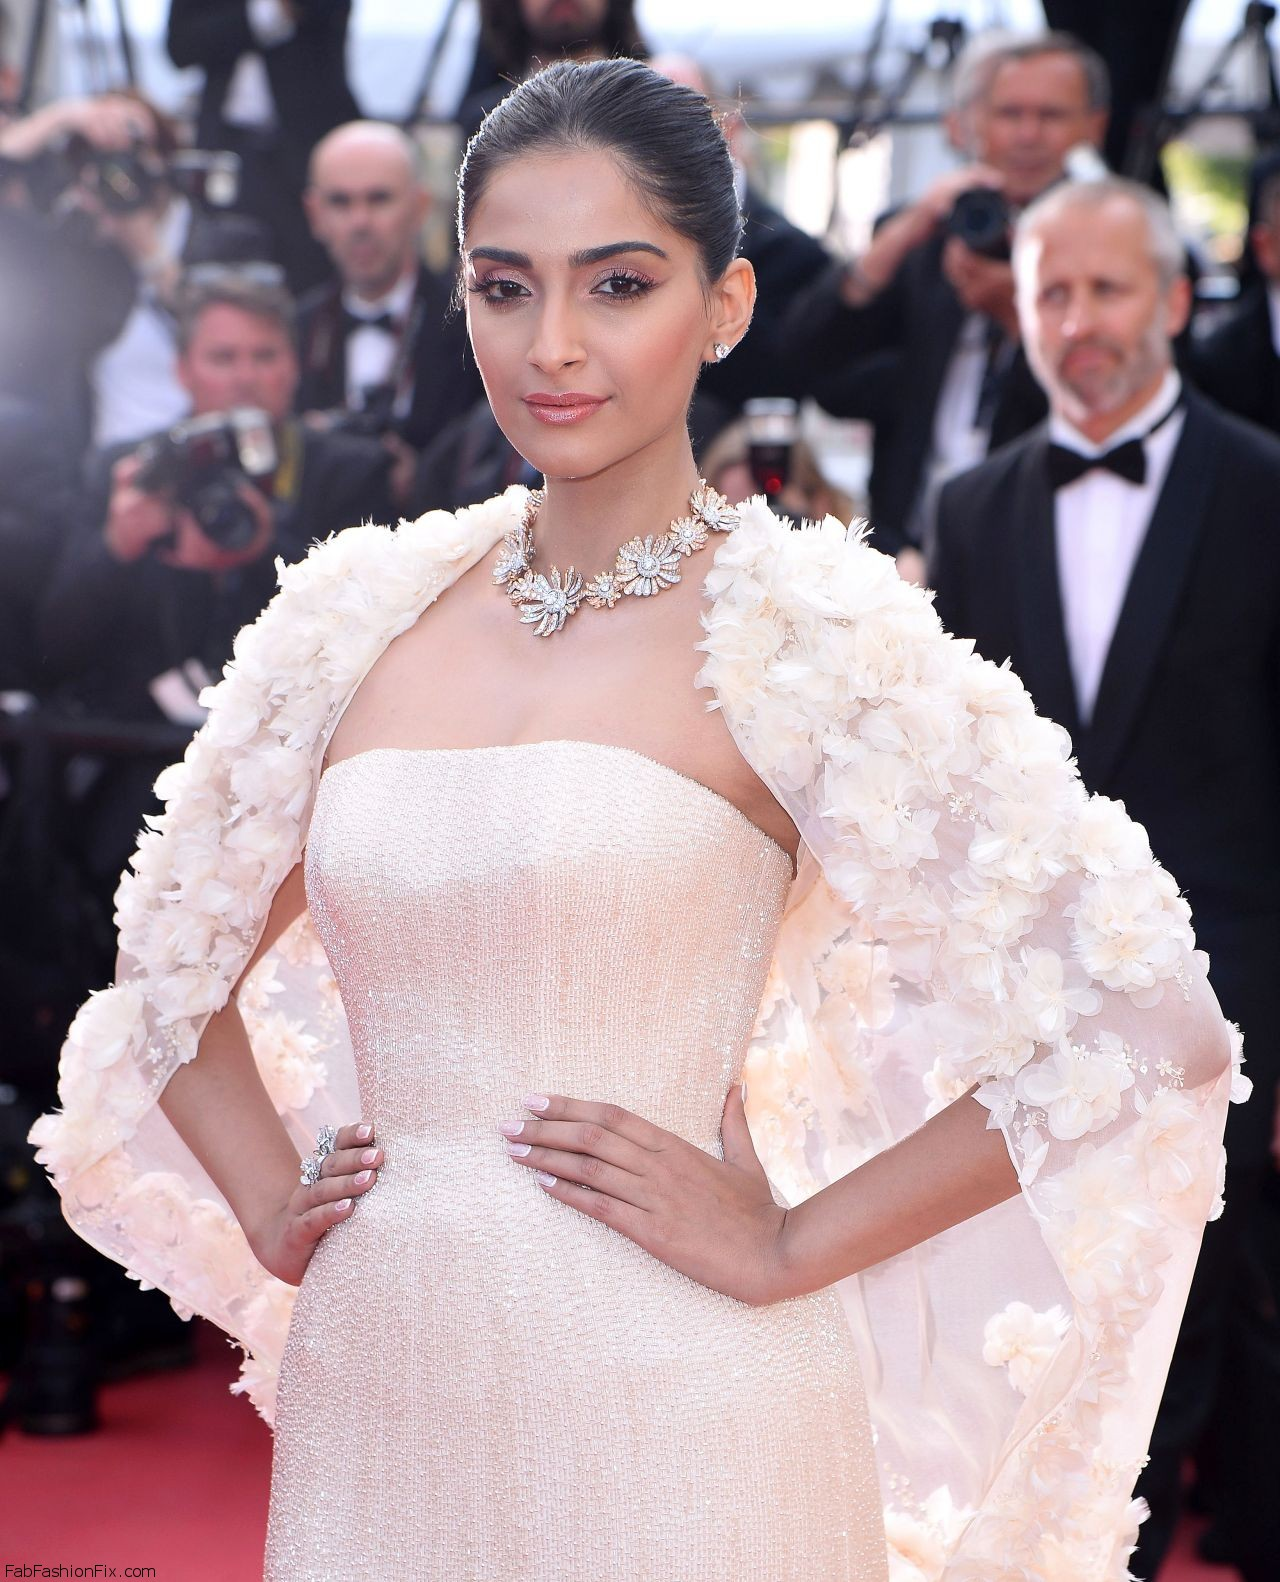 sonam-kapoor-the-loving-premiere-at-69th-cannes-film-festival-5-16-2016-5